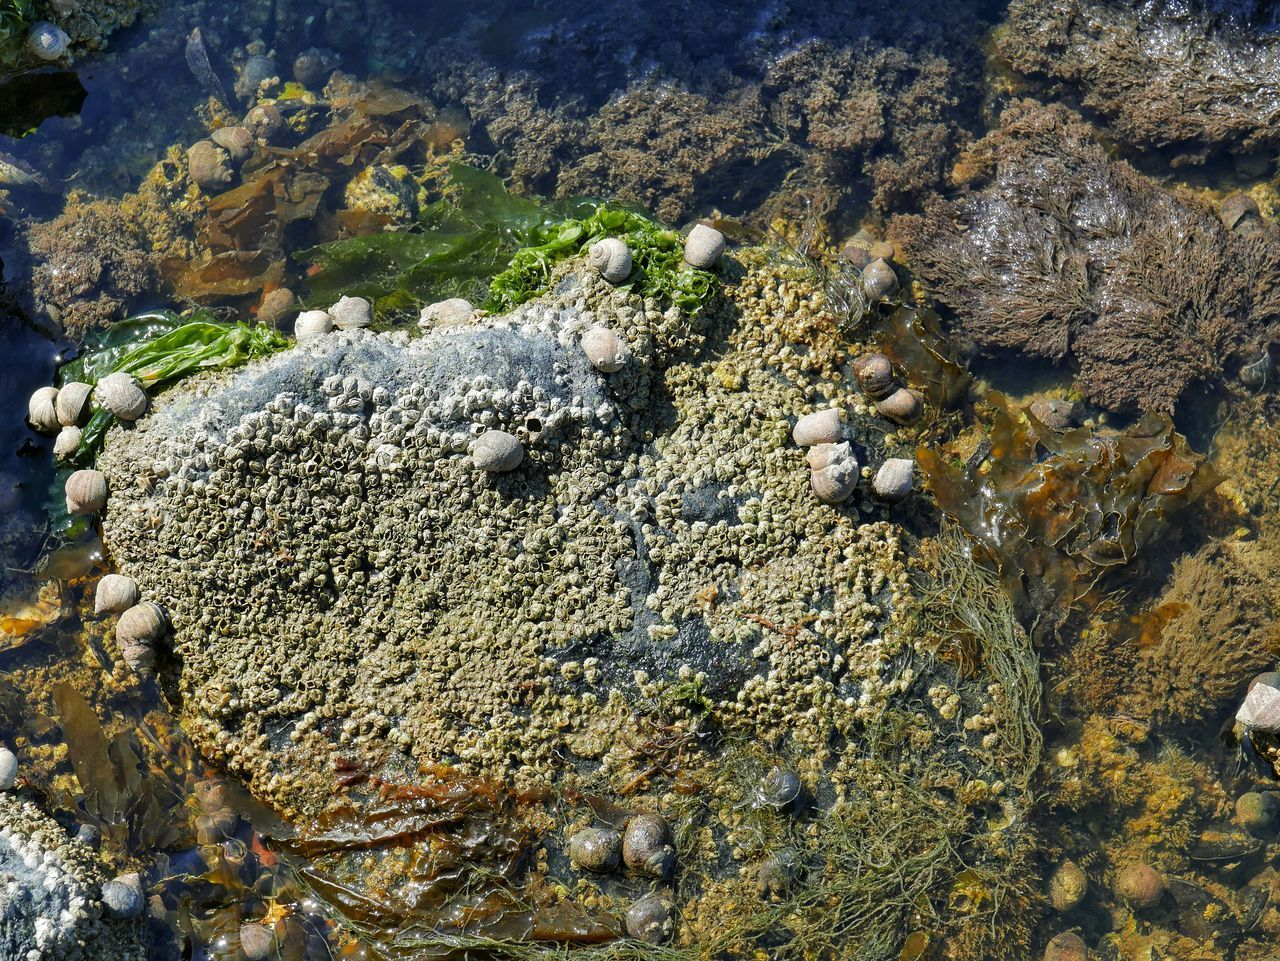 rock, solid, nature, no people, rock - object, day, beauty in nature, land, water, high angle view, textured, outdoors, moss, sea, growth, animals in the wild, sea life, rough, plant, animal wildlife, marine, pebble, lichen